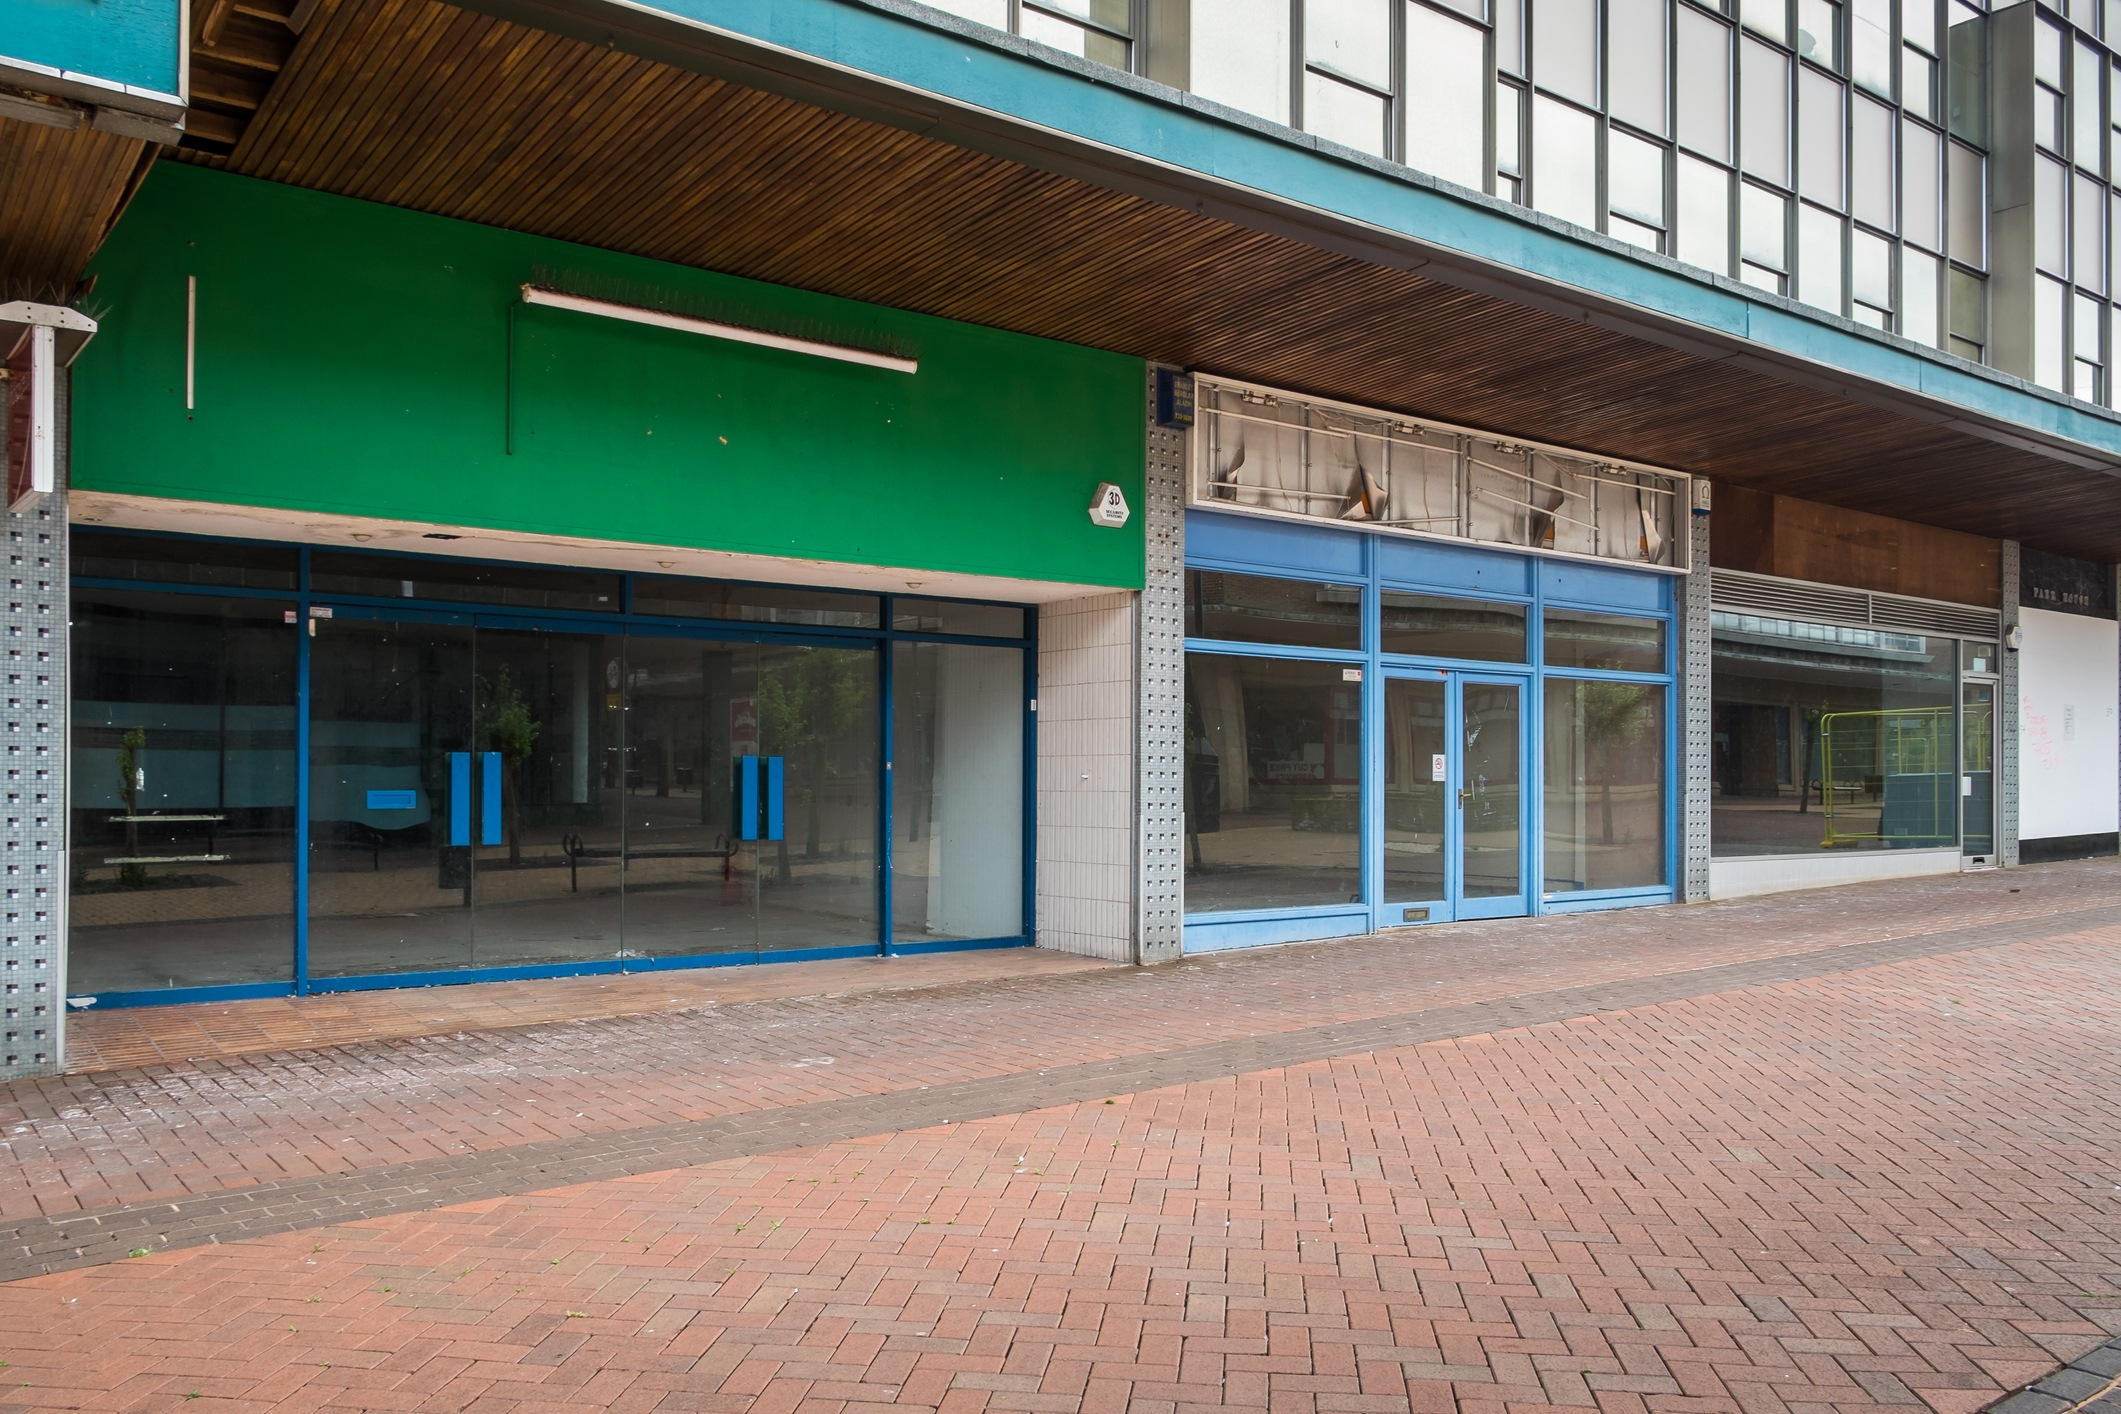 Empty shops in an abandoned high street